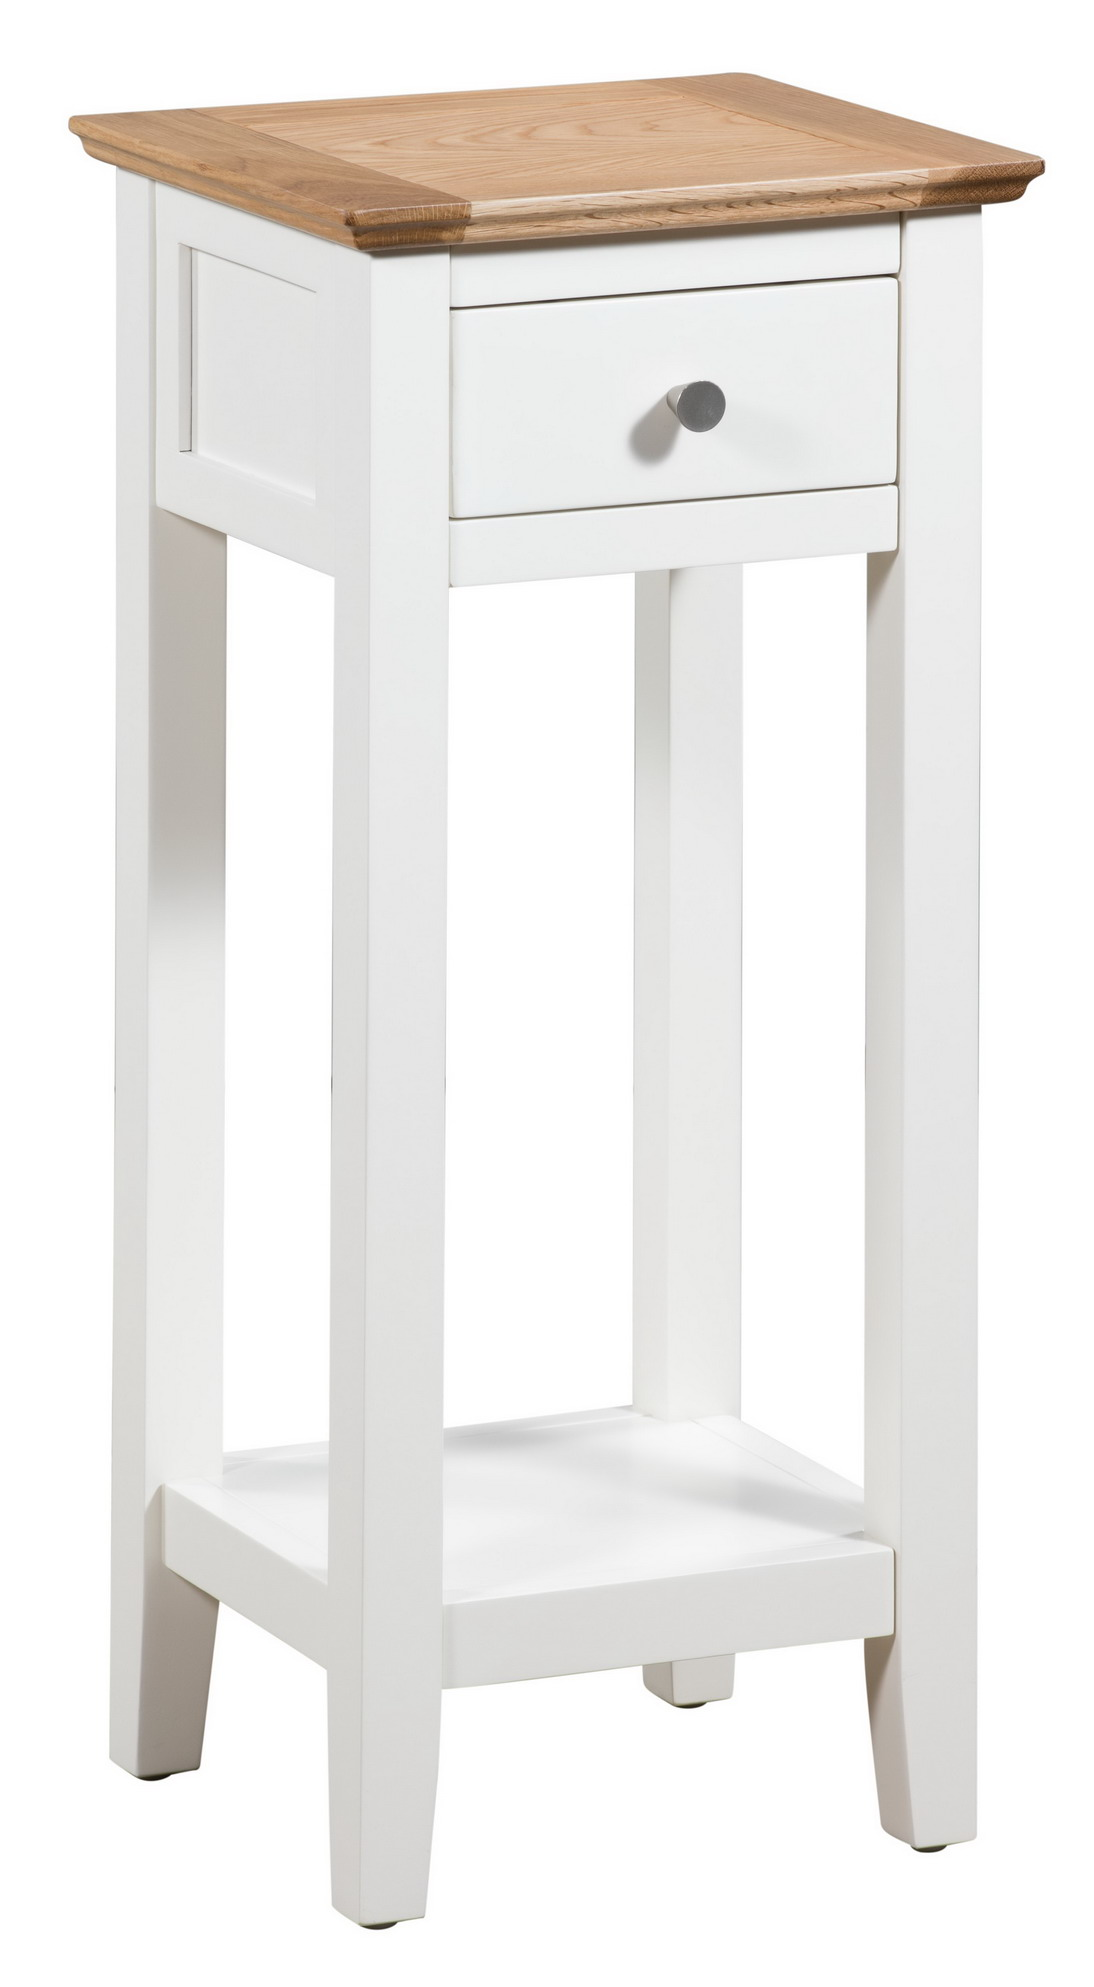 Small White Painted Oak Console Table